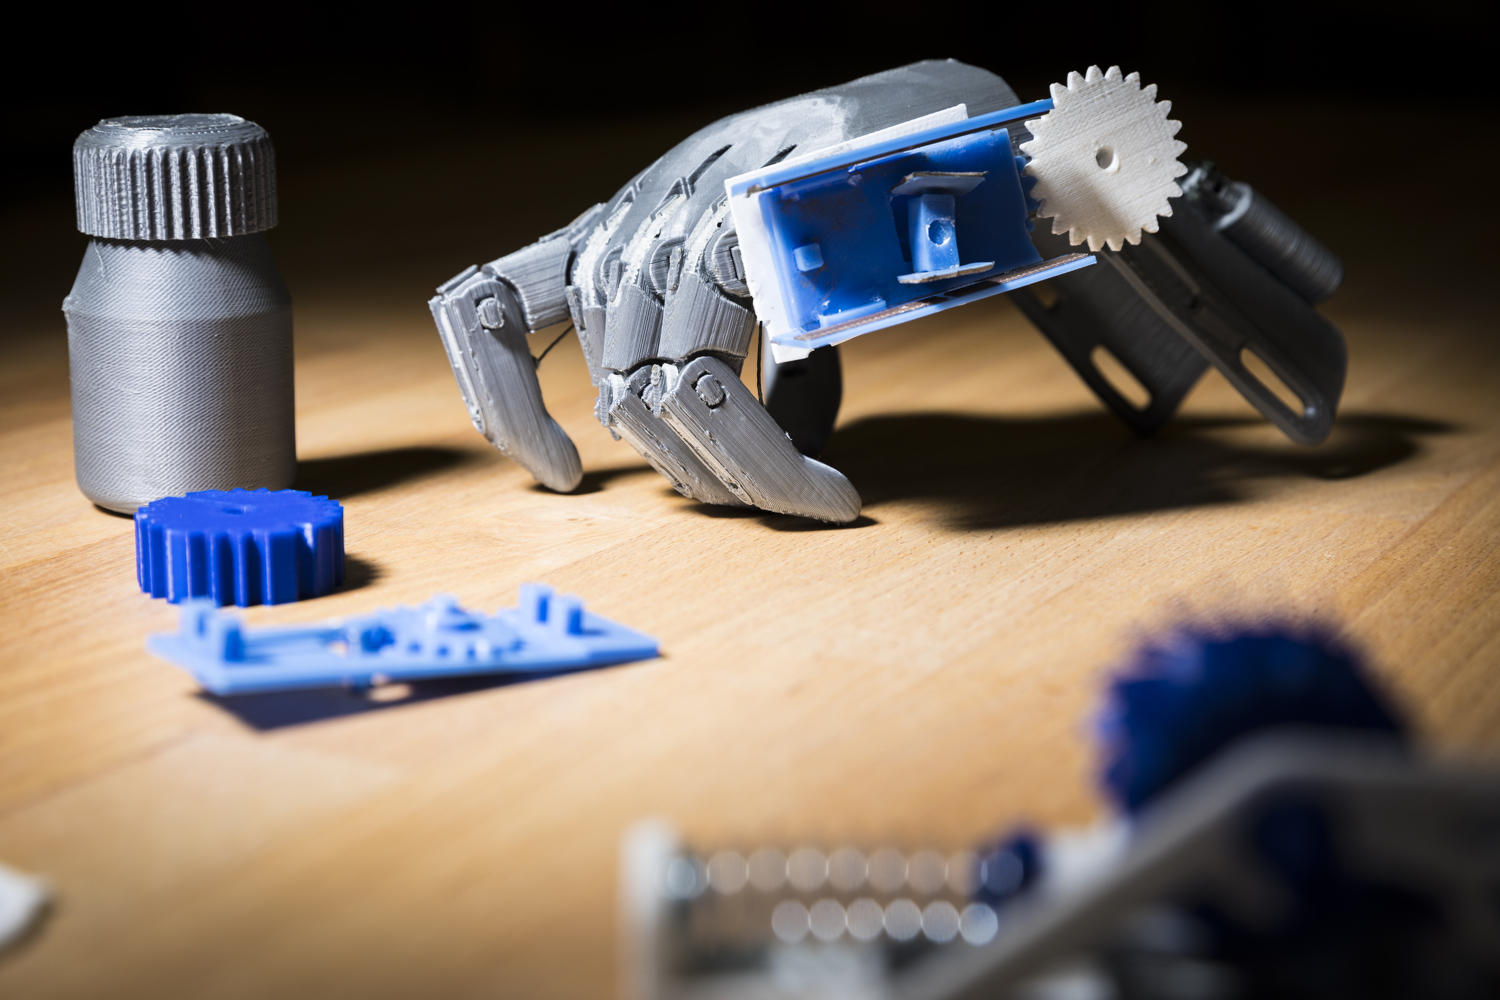 A 3D printed e-NABLE prosthetic hand. Image via Mark Stone/University of Washington